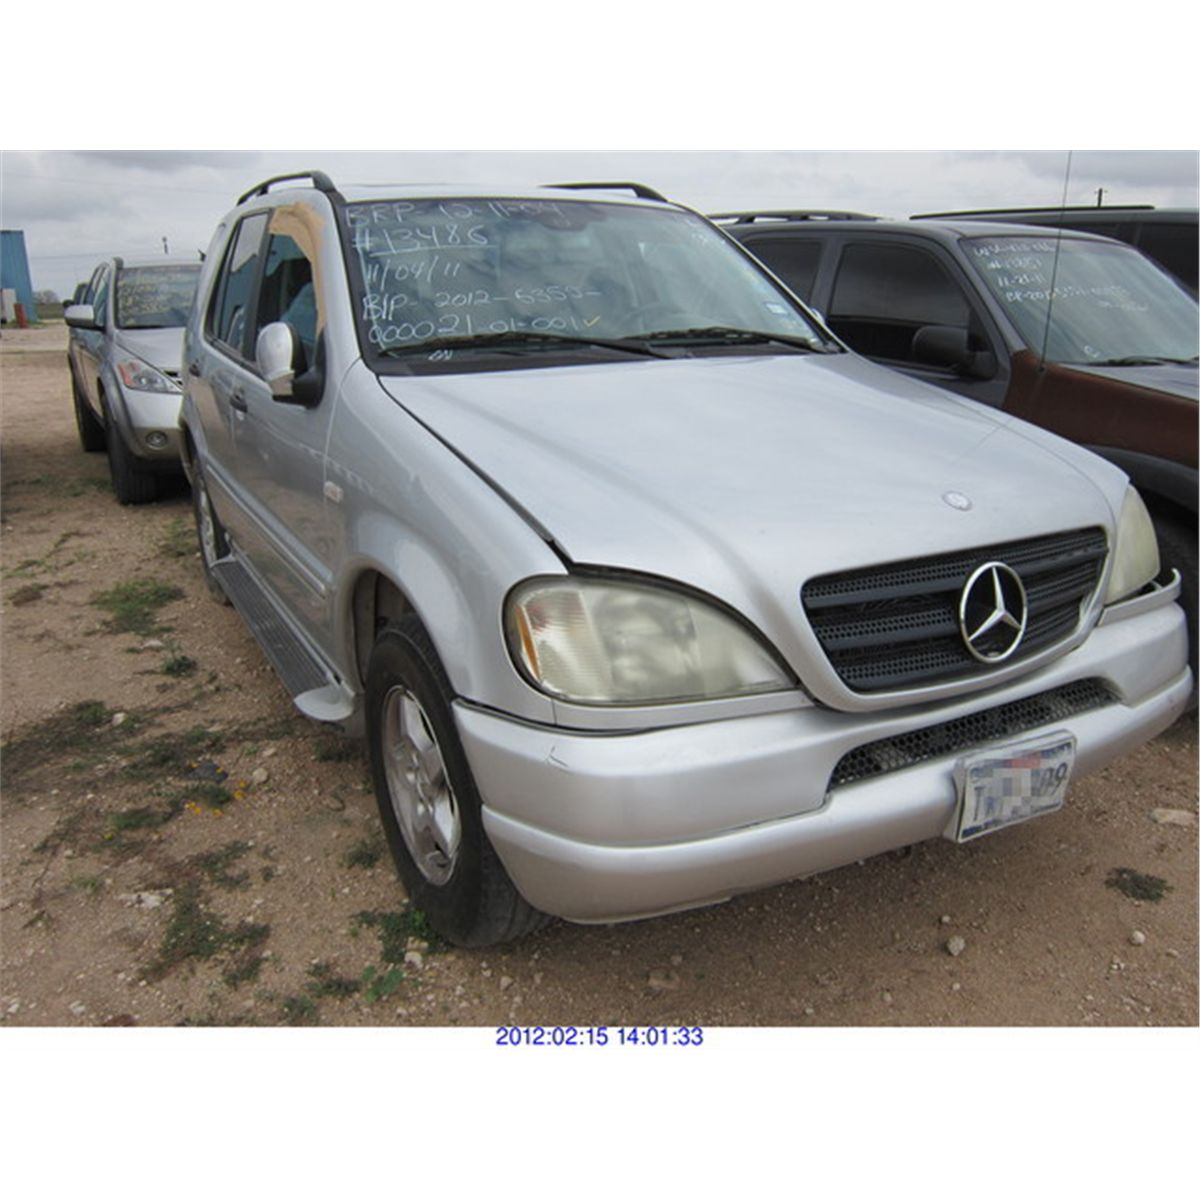 2001 mercedes benz ml320 rod robertson enterprises inc for 2001 mercedes benz ml320